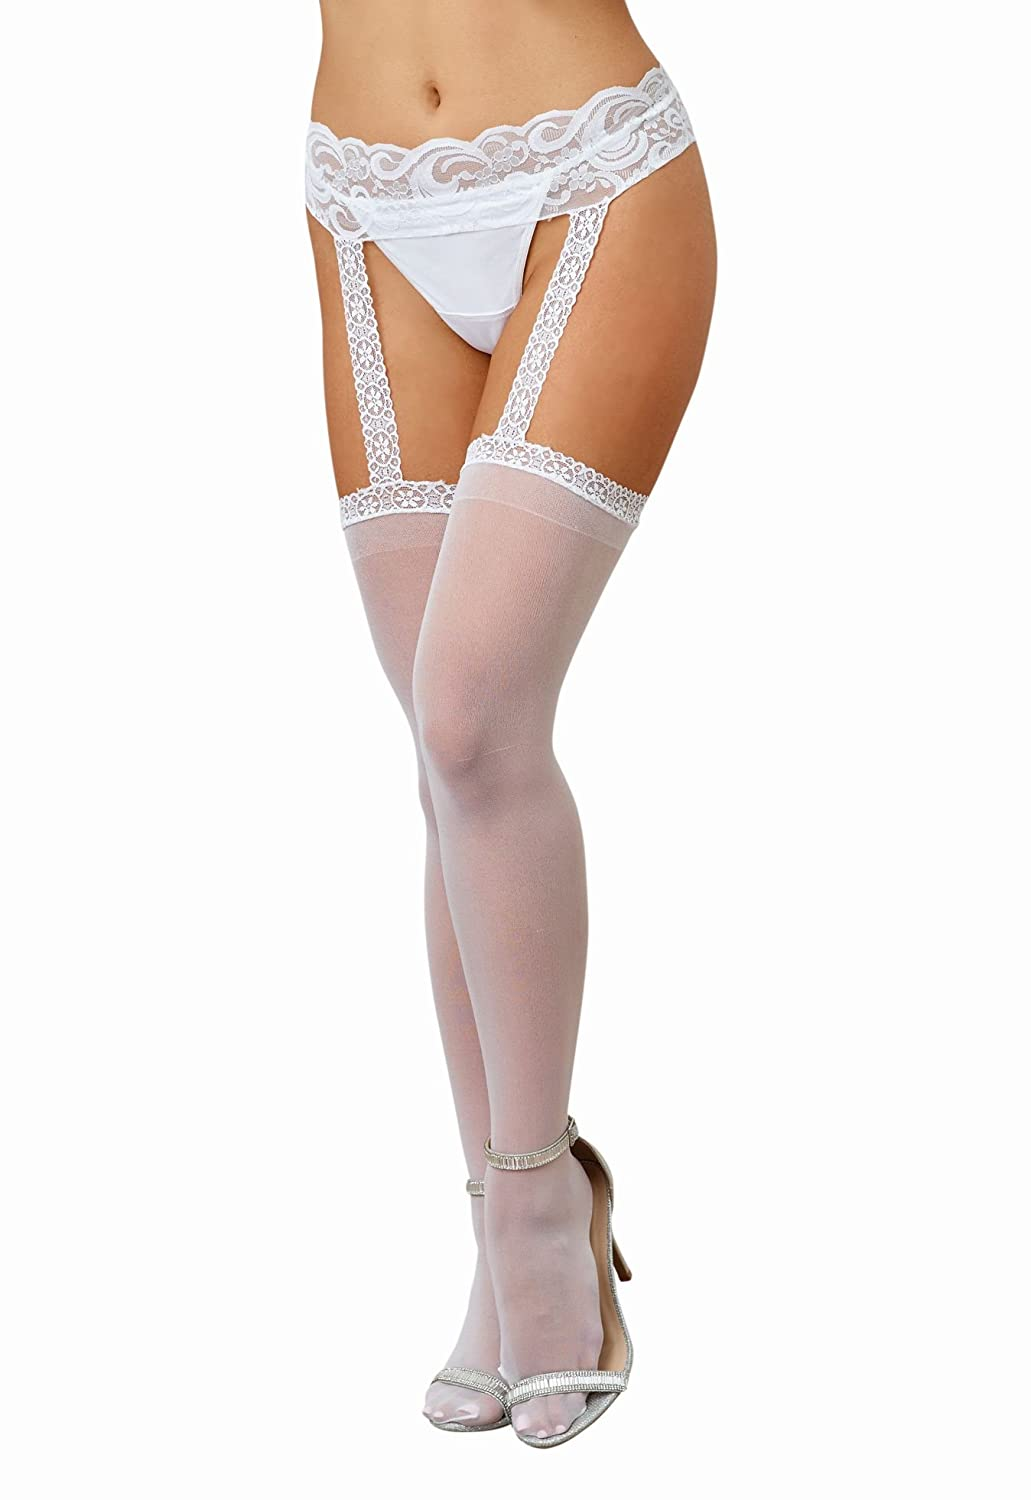 Dreamgirl, Women's Verona Hosiery Garter with Attached Thigh Highs One Size Black NEY9A 0013-BLACK-O/S